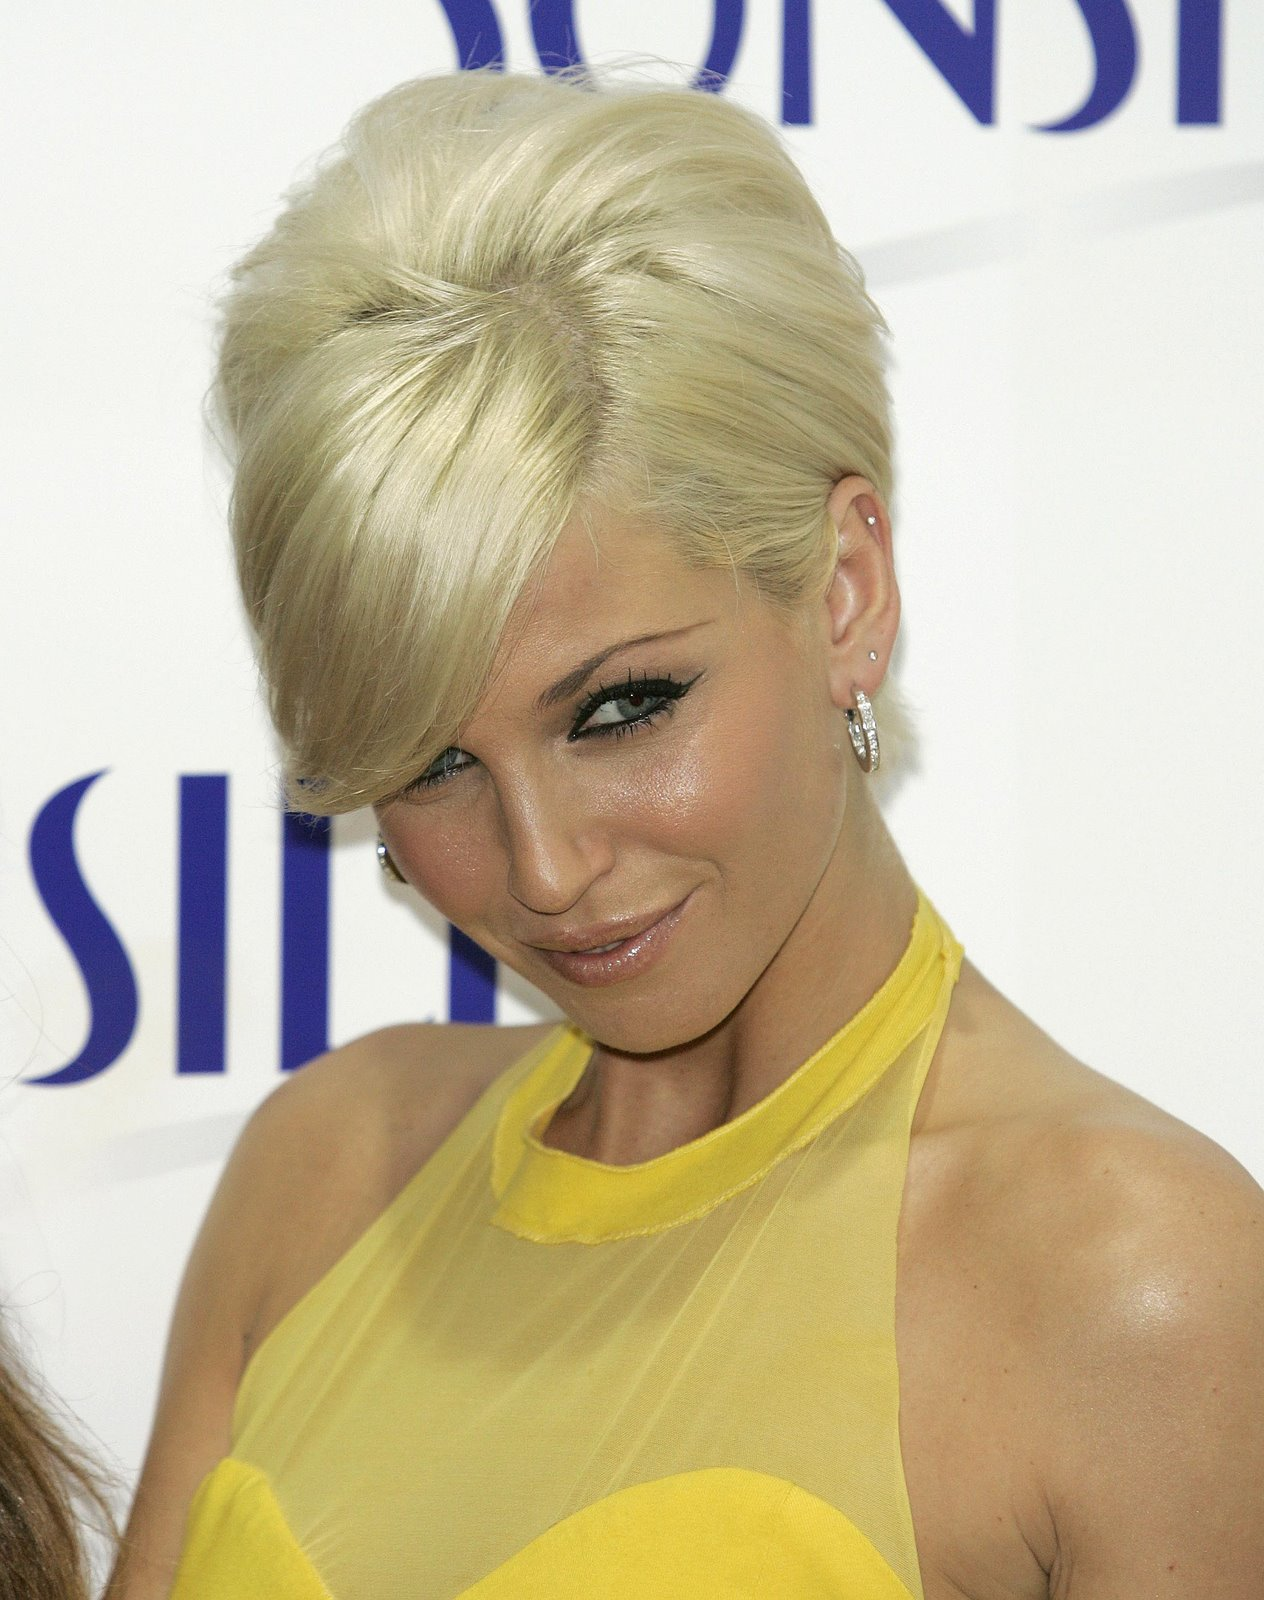 Emo hairstyle for girls with short hair